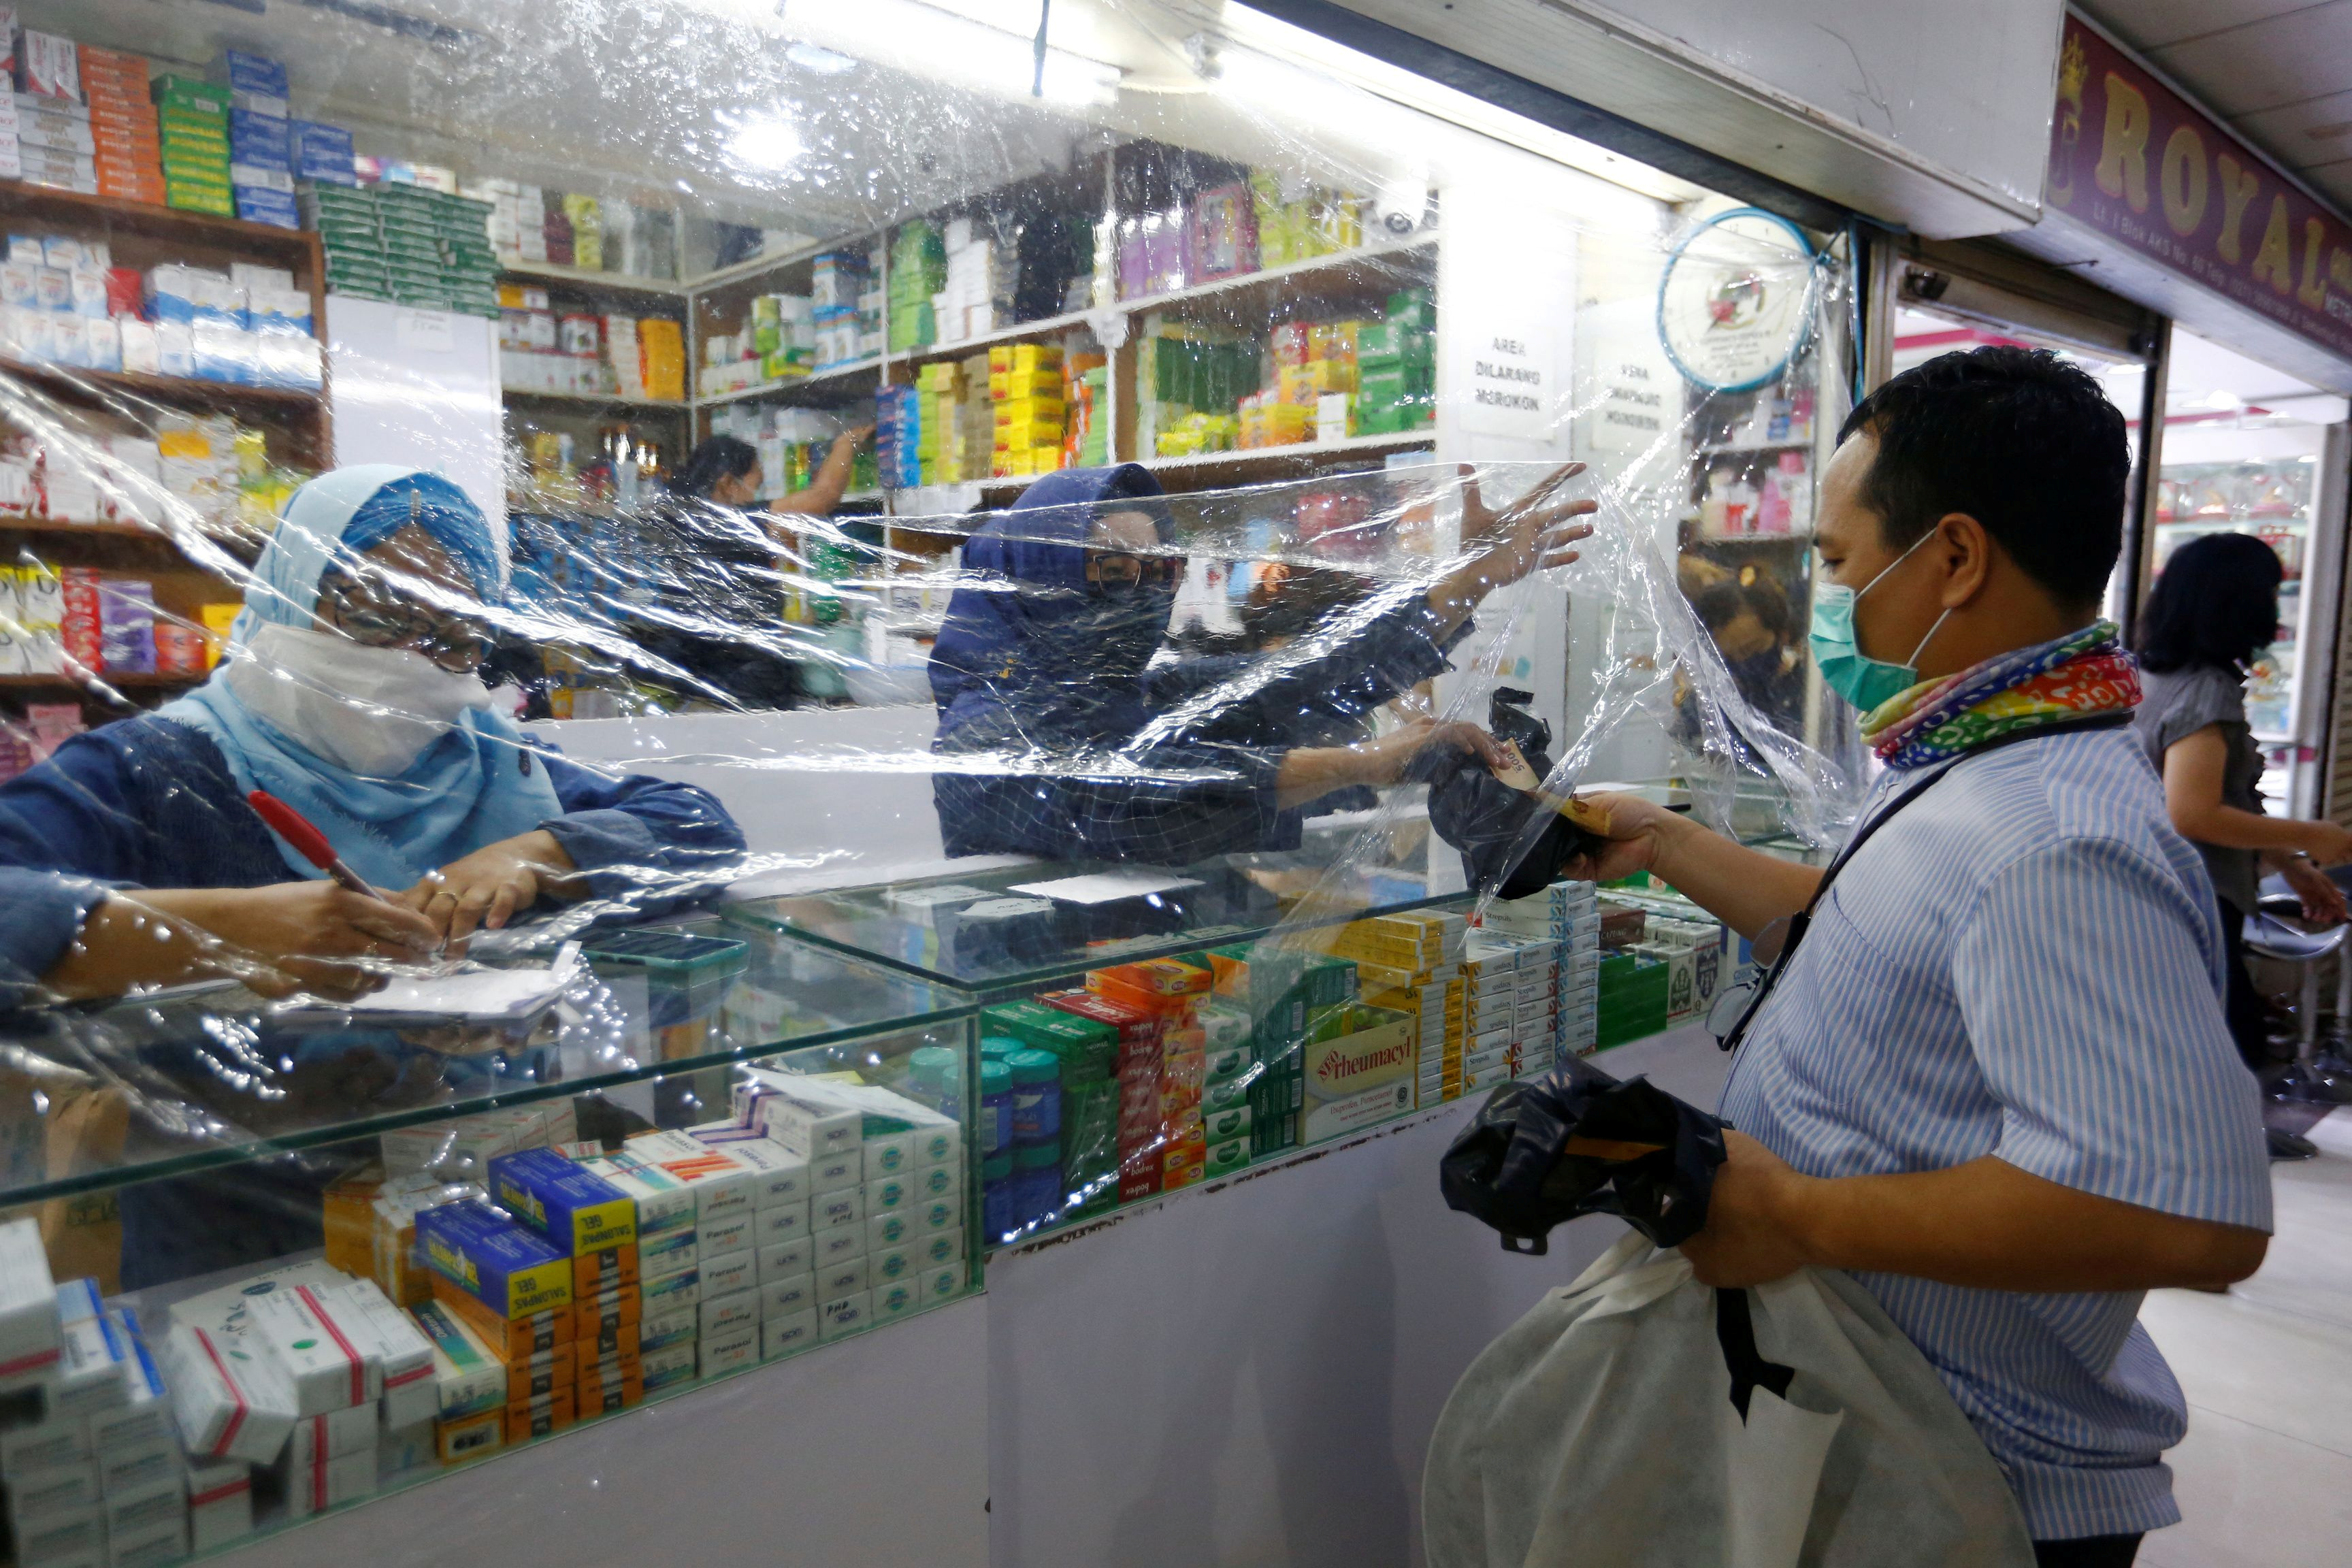 A customer wearing protective face mask makes his transaction through a plastic barrier as a preventive measure against the coronavirus disease (COVID-19) in Jakarta, Indonesia, April 2, 2020. REUTERS/Ajeng Dinar Ulfiana